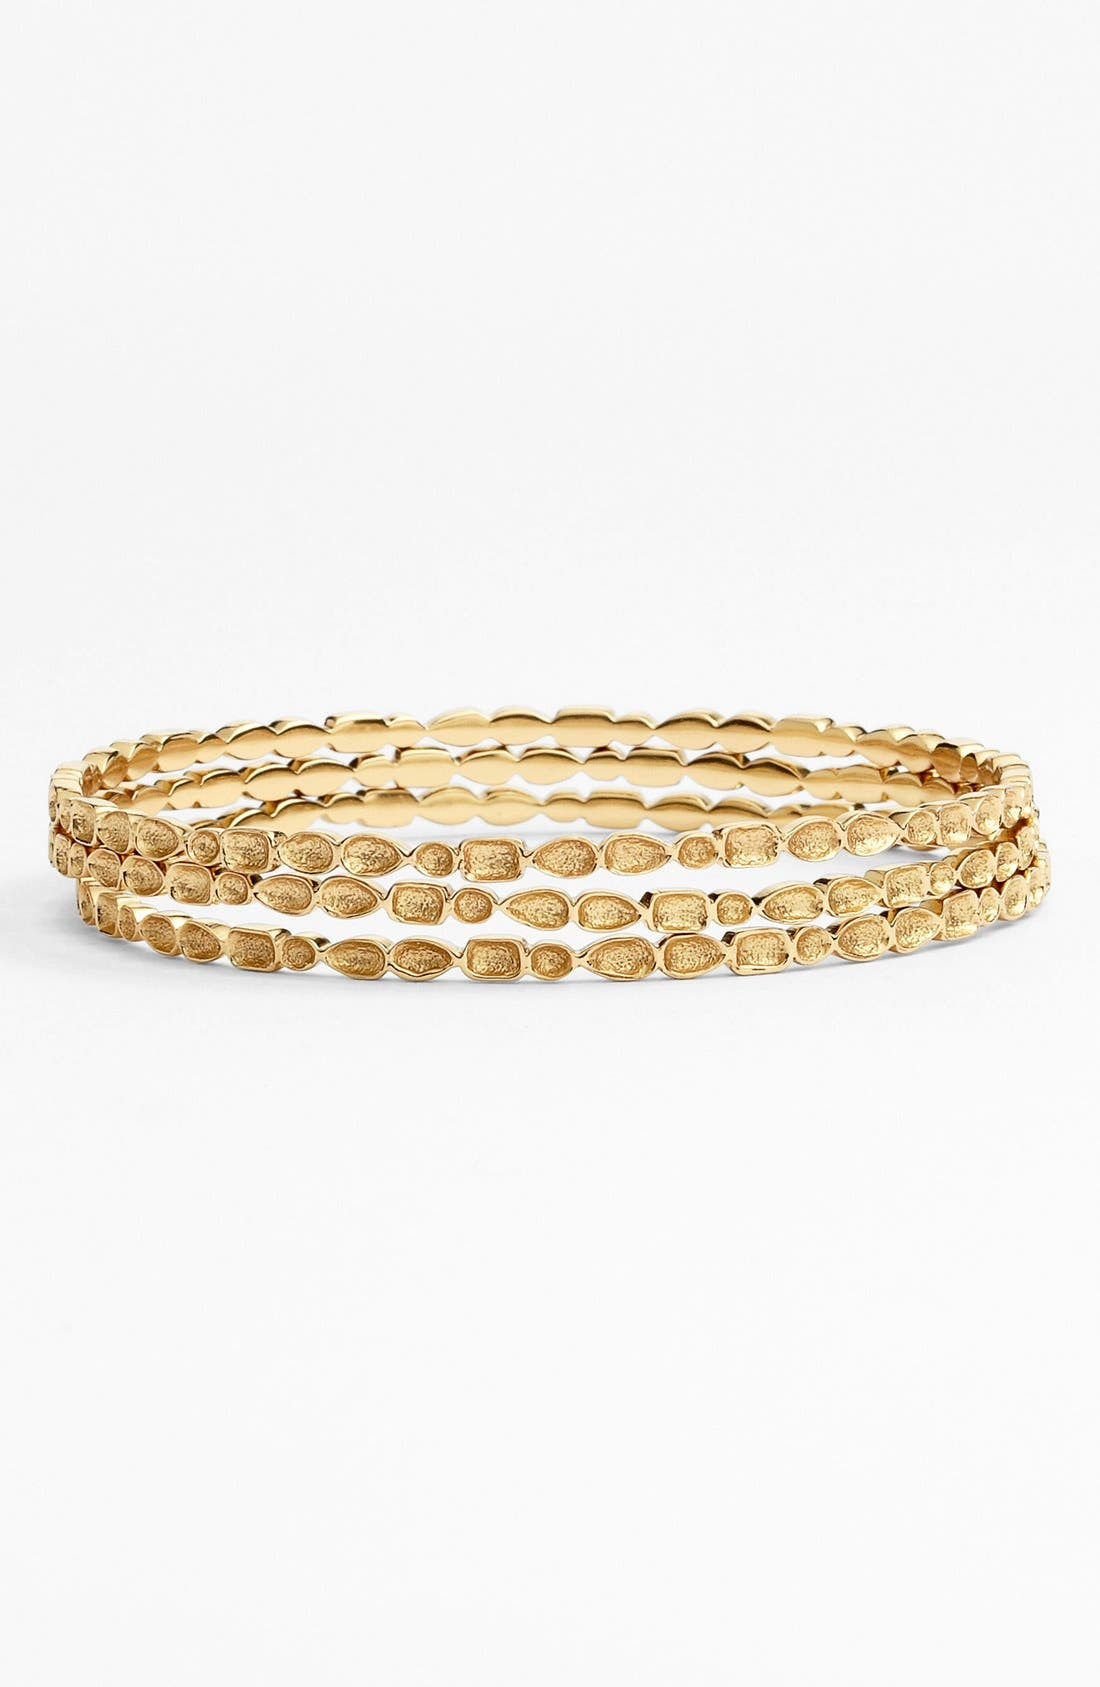 Alternate Image 1 Selected - Melinda Maria 'Mosaic' Bangle Set (Set of 3) (Nordstrom Exclusive)